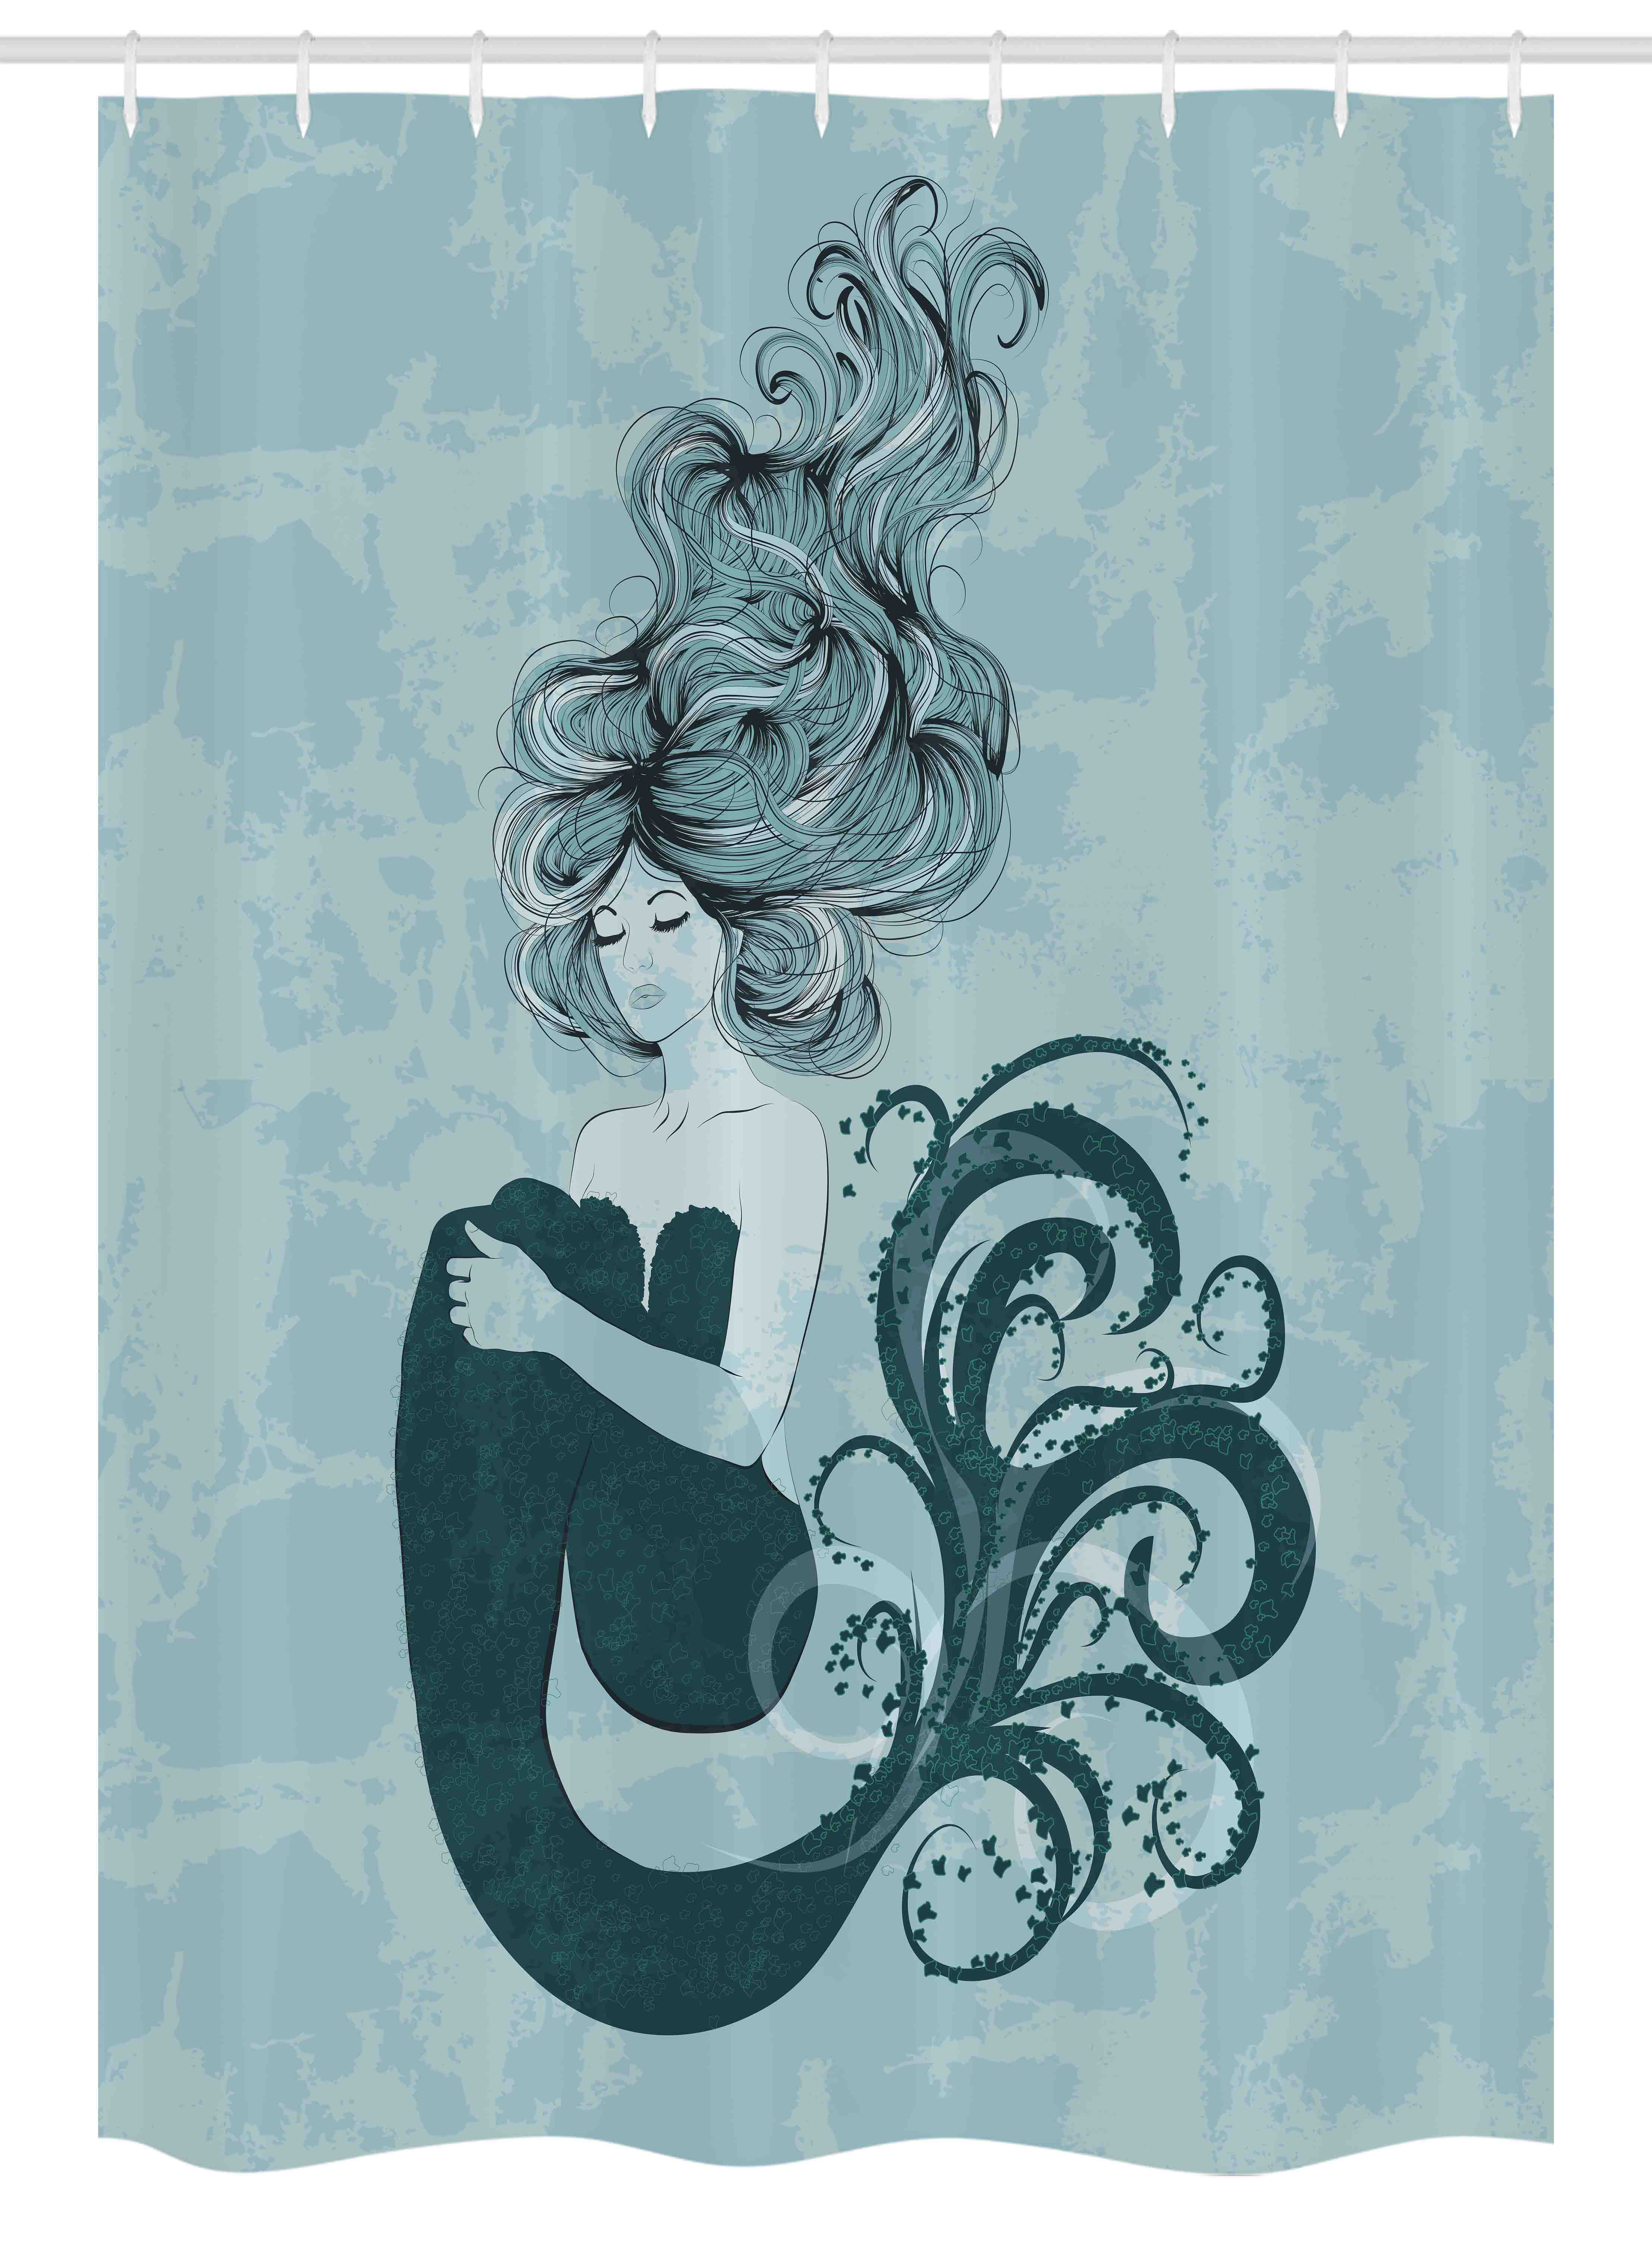 Mermaid Stall Shower Curtain, Sleeping Mermaid Design With Wavy Hair Hand  Drawn Effect Grungy Backdrop